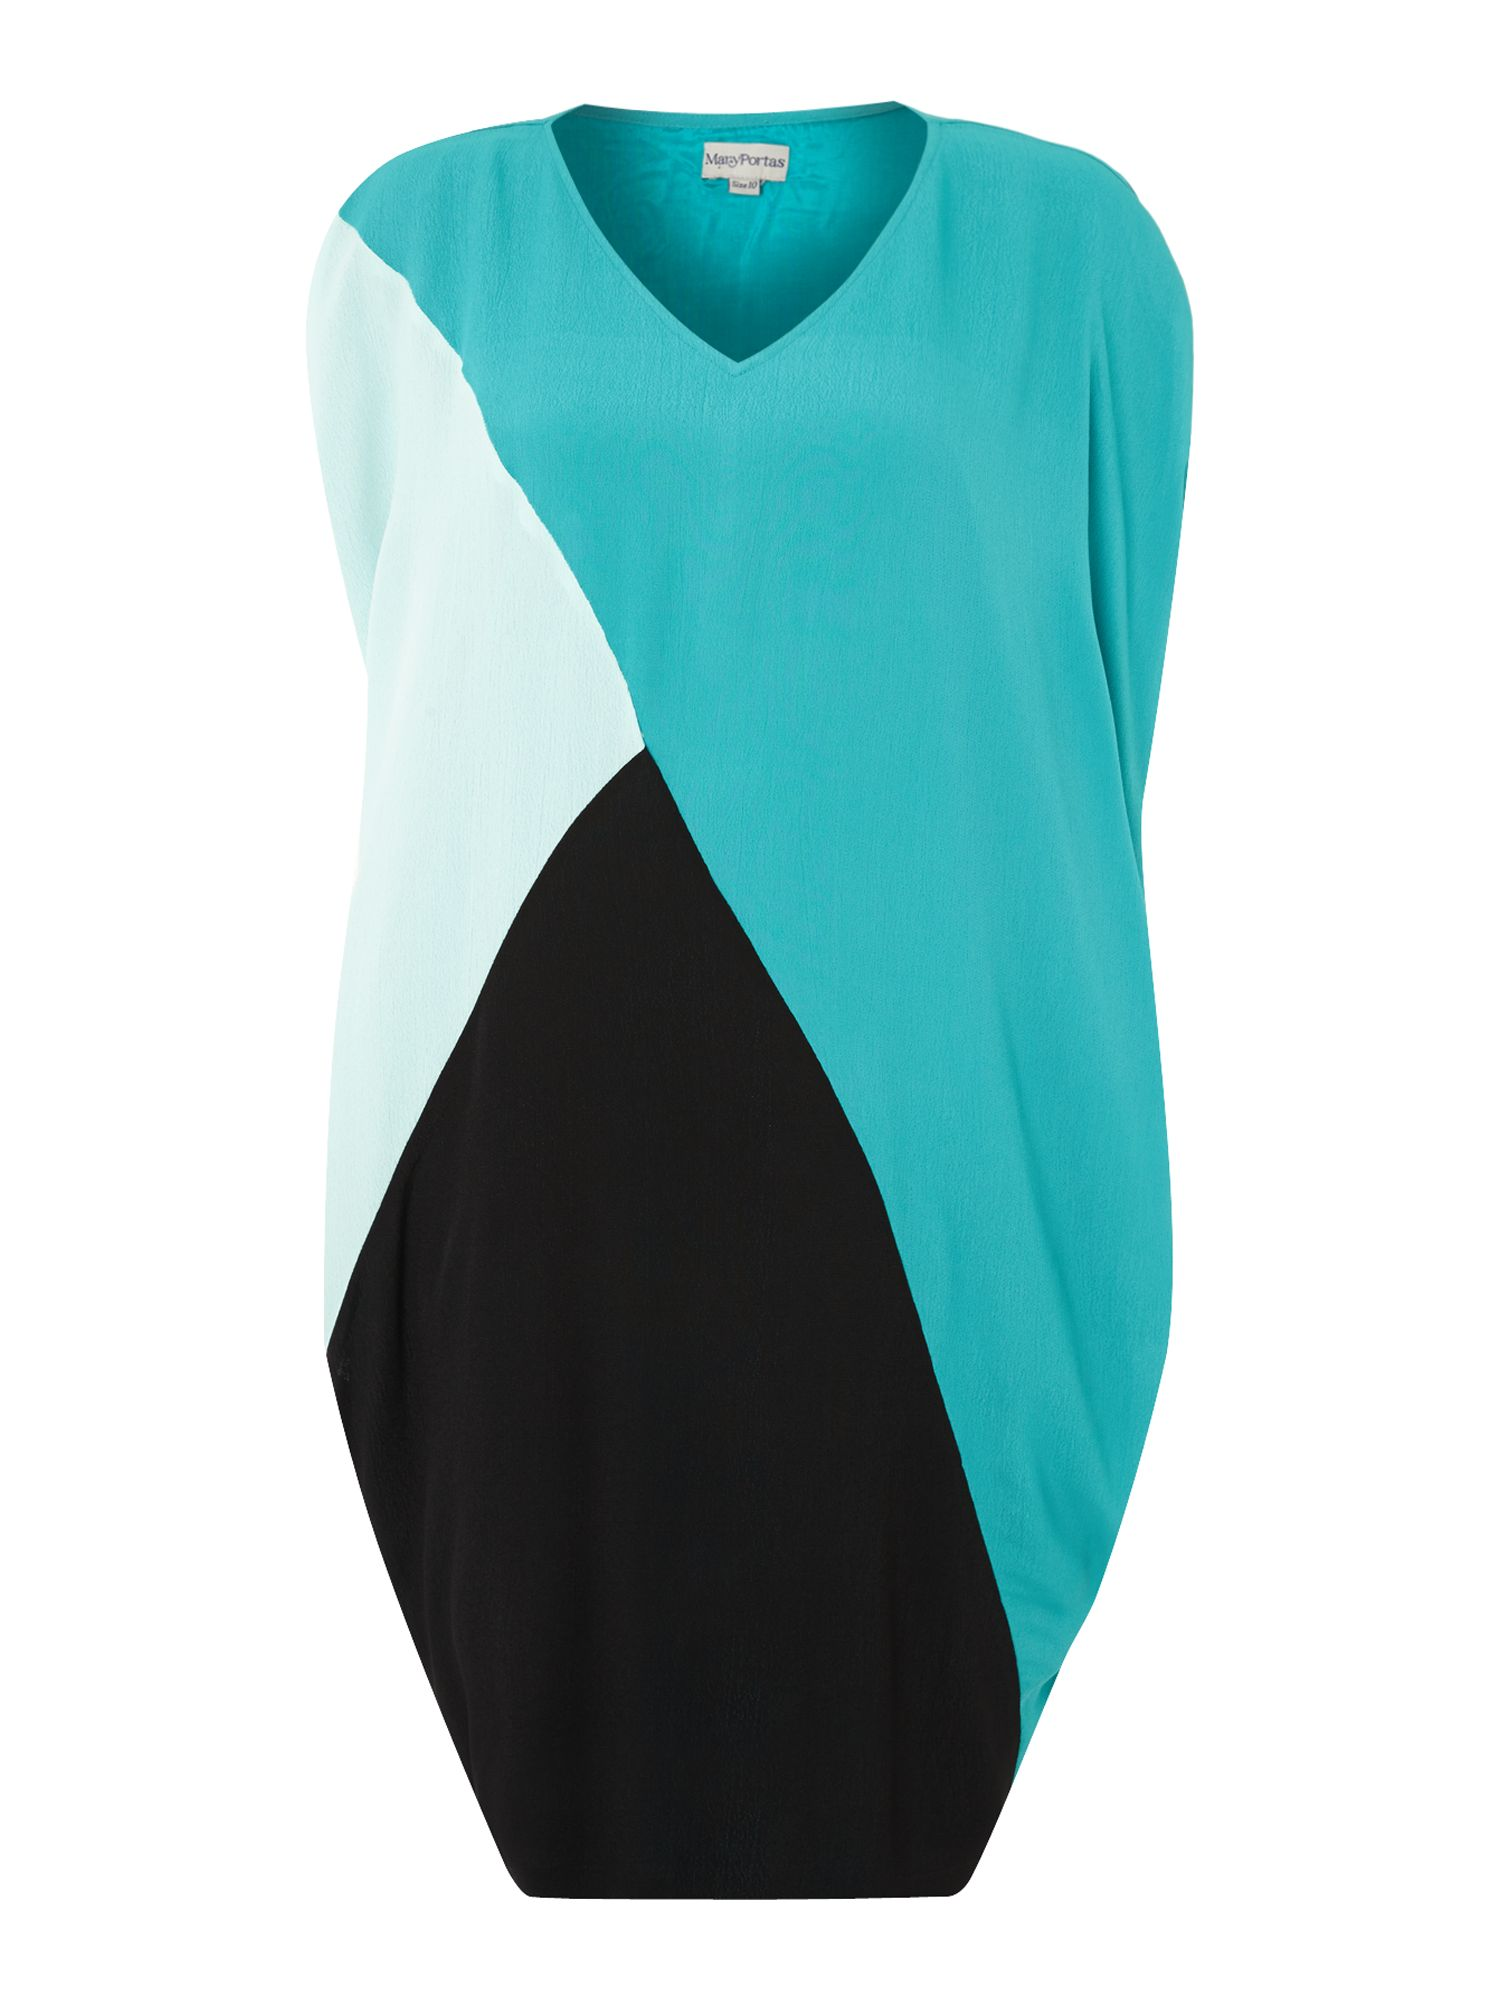 Kite colour block dress